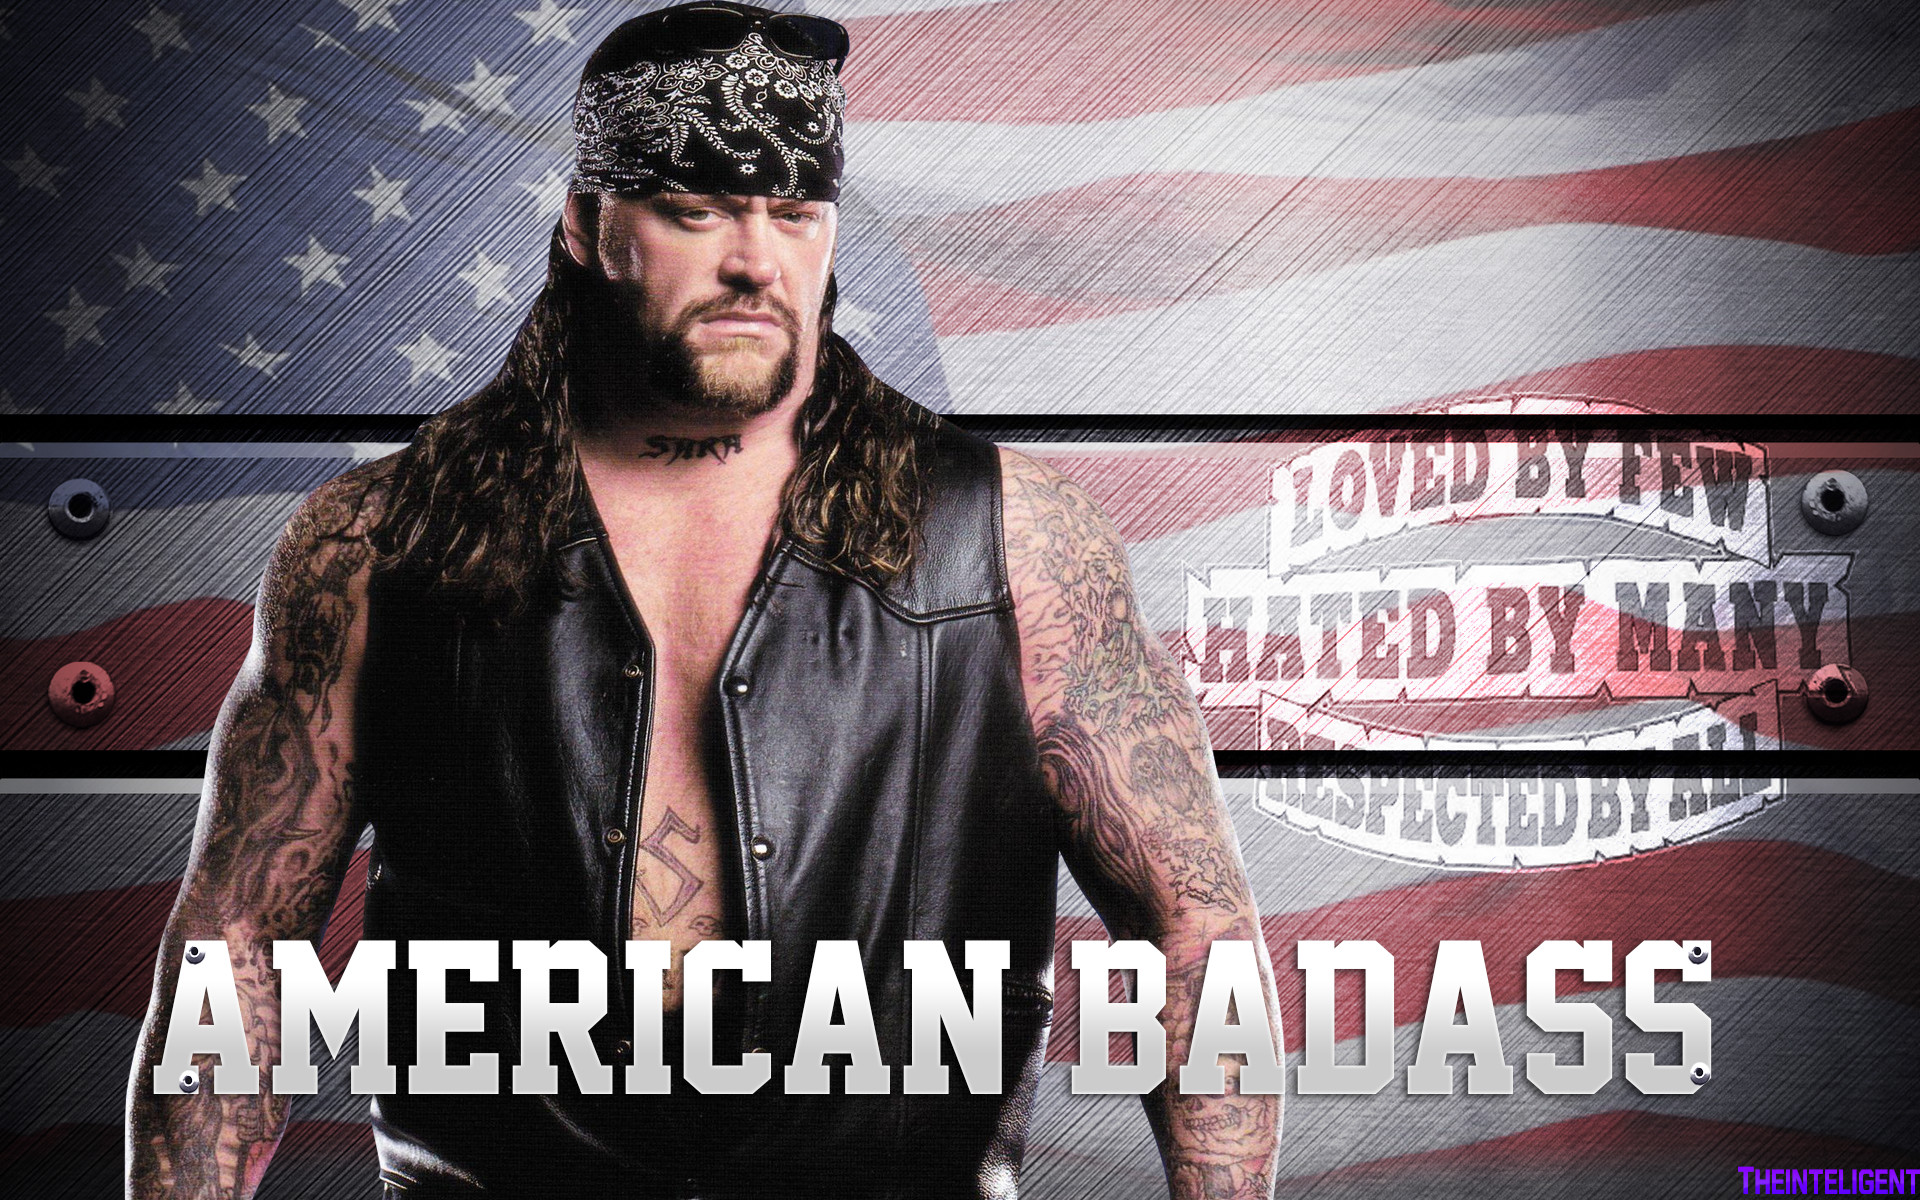 1920x1200 ... The Undertaker American Badass Wallpaper HD by Theinteligent